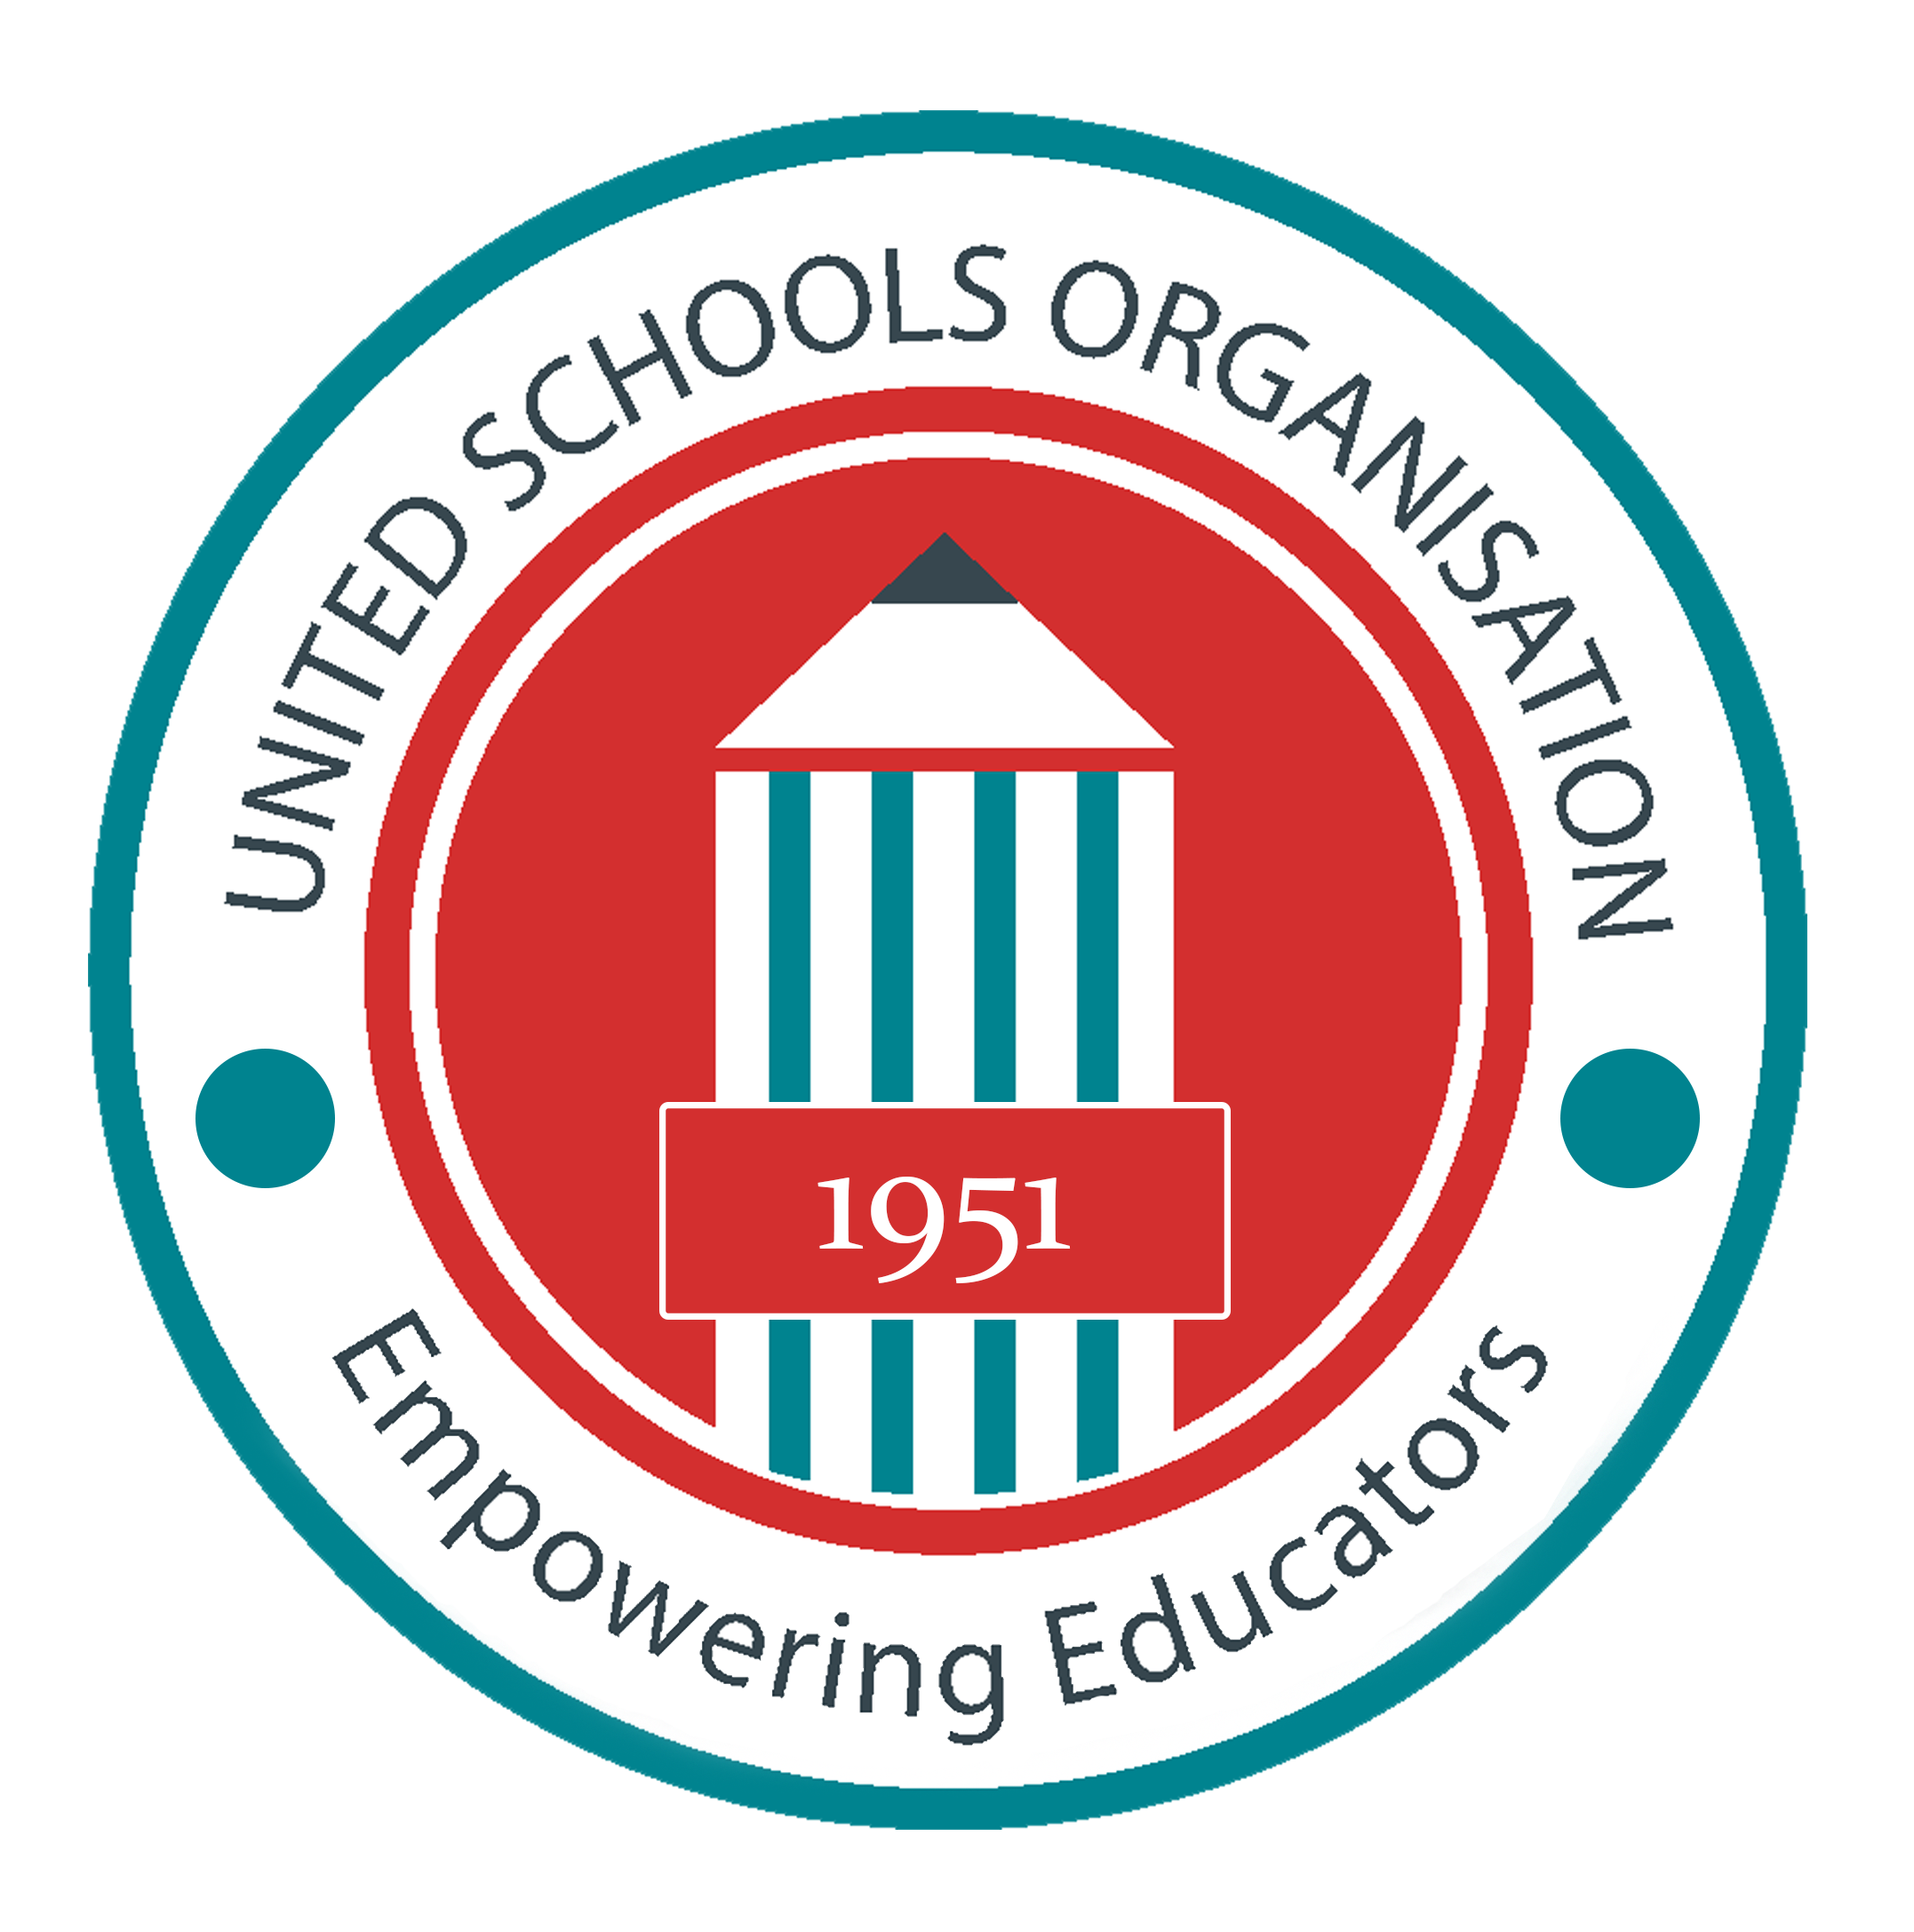 United Schools Organisation of India